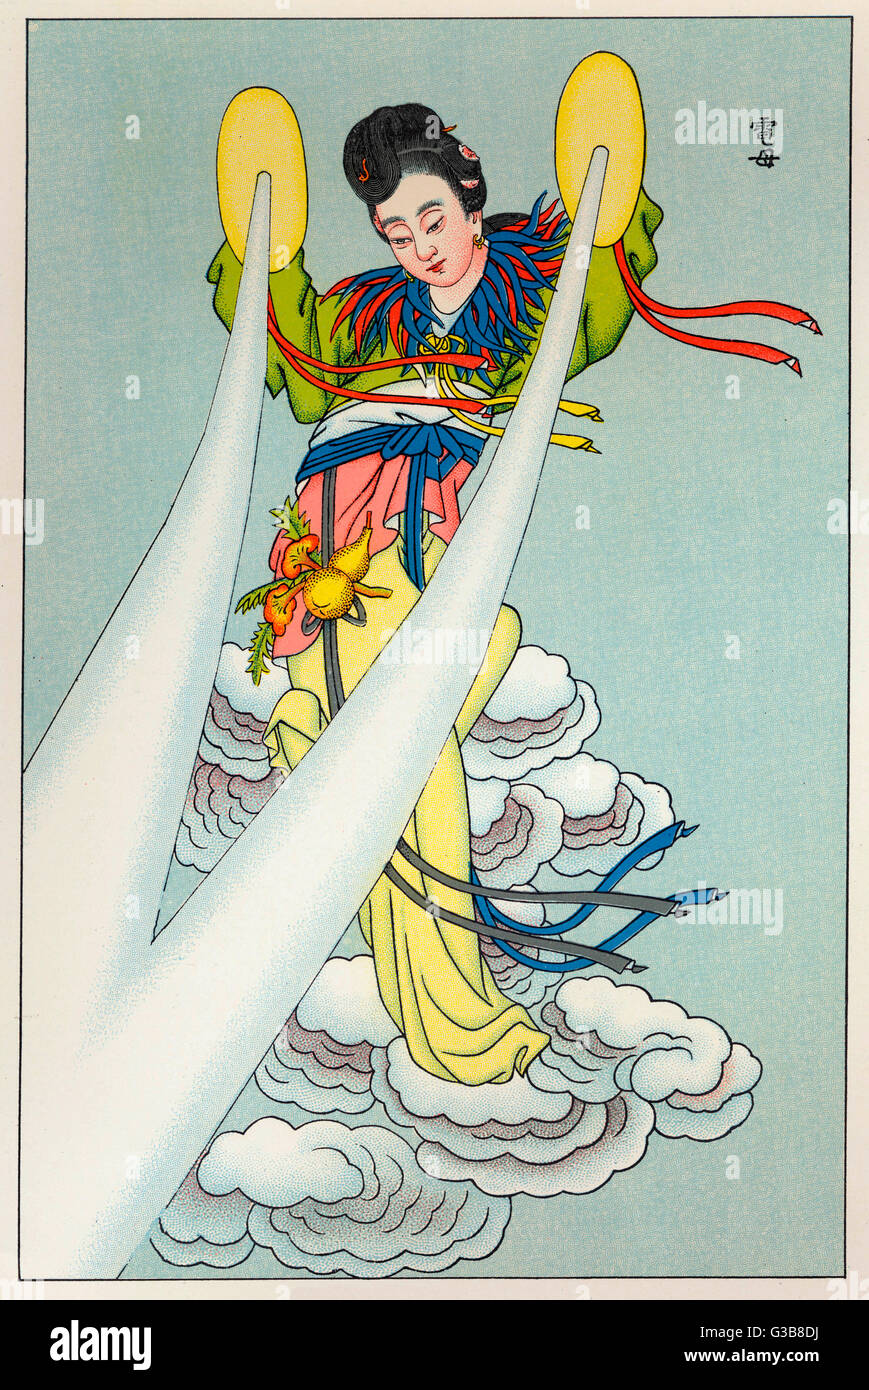 TIAN-MU, goddess & mother of  lightning. She uses mirrors to  send the lightning to earth.        Date: - Stock Image